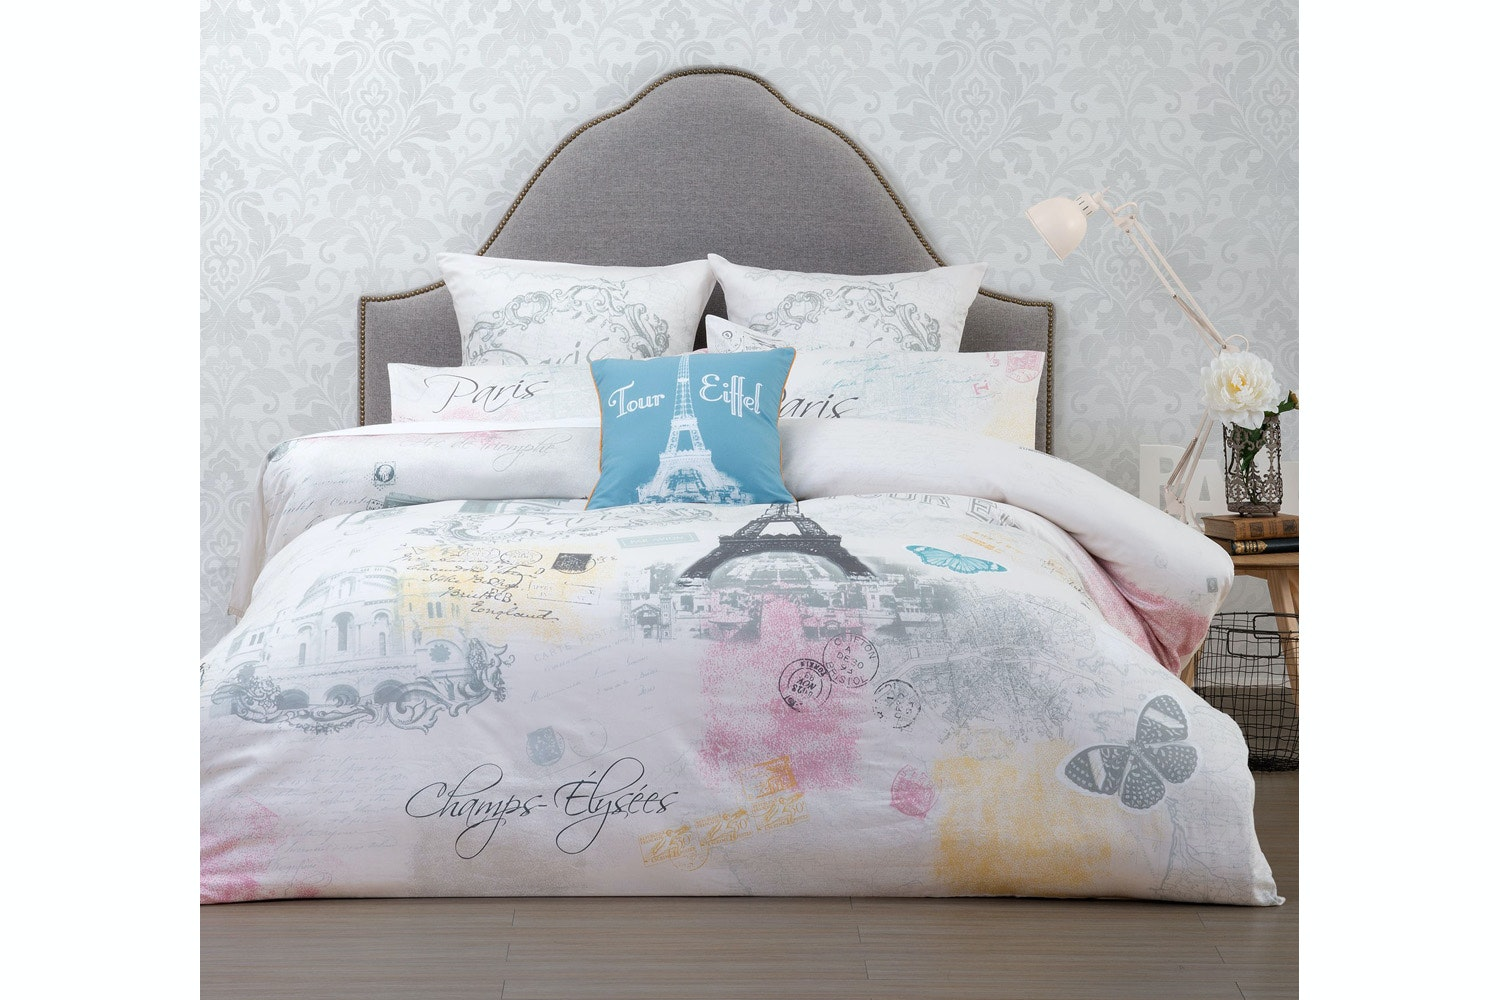 Belle Paris Duvet Cover